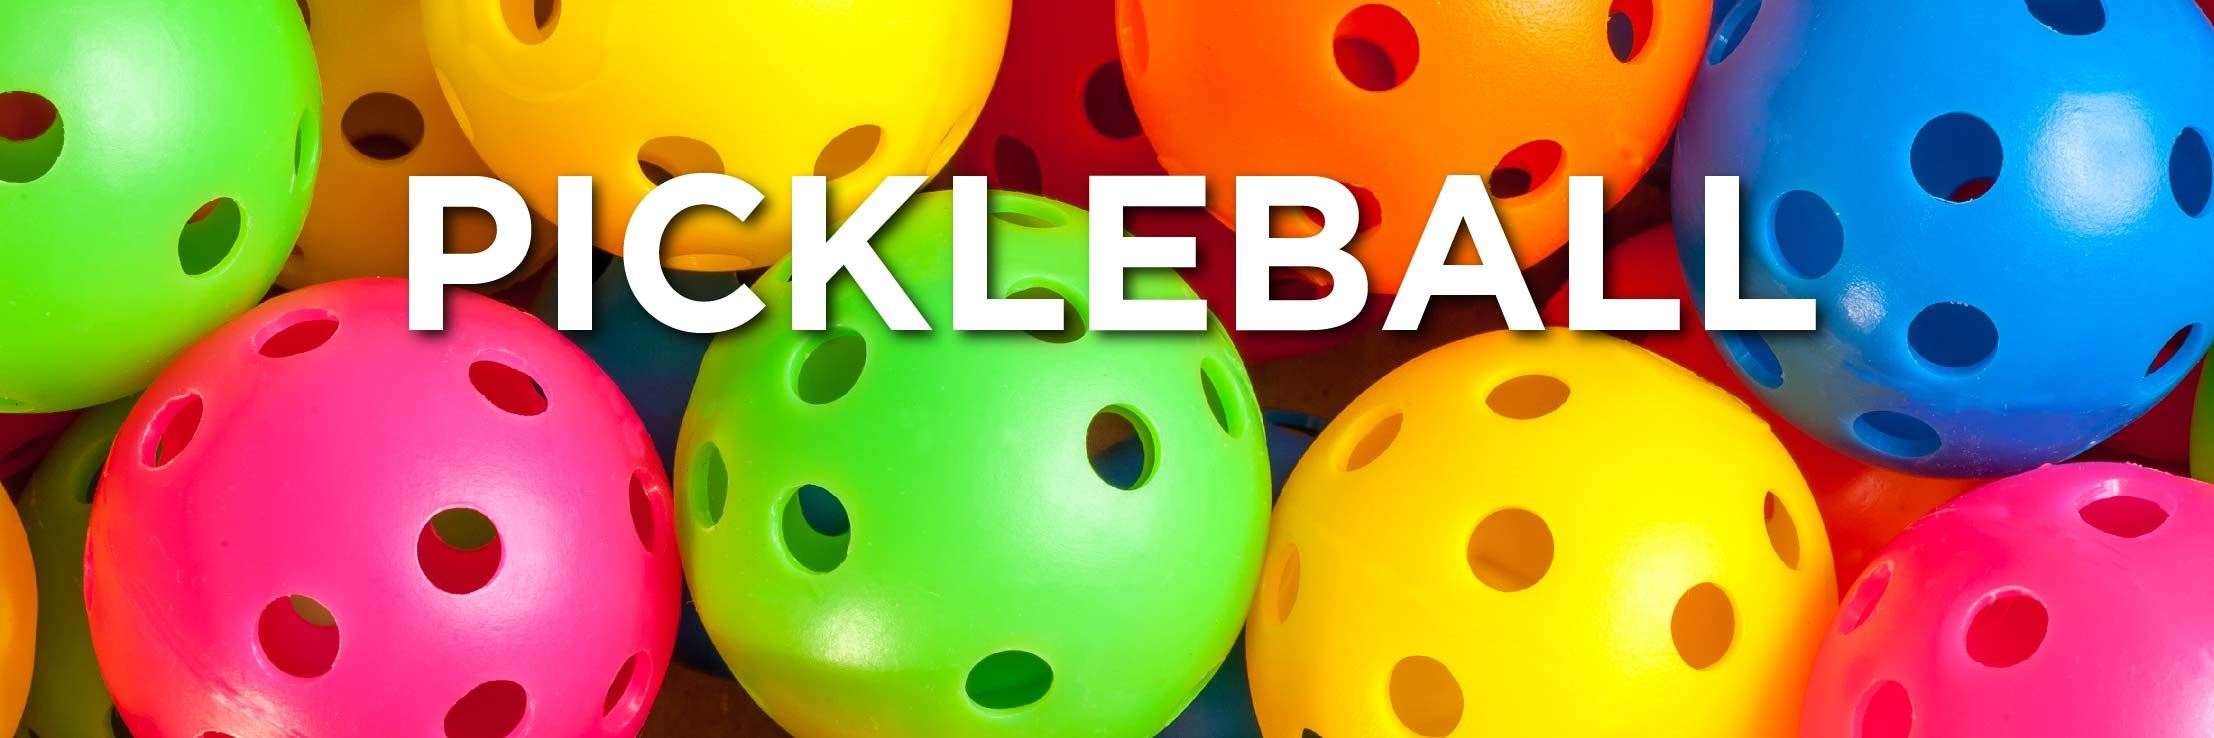 Pickleball Web Strip-05